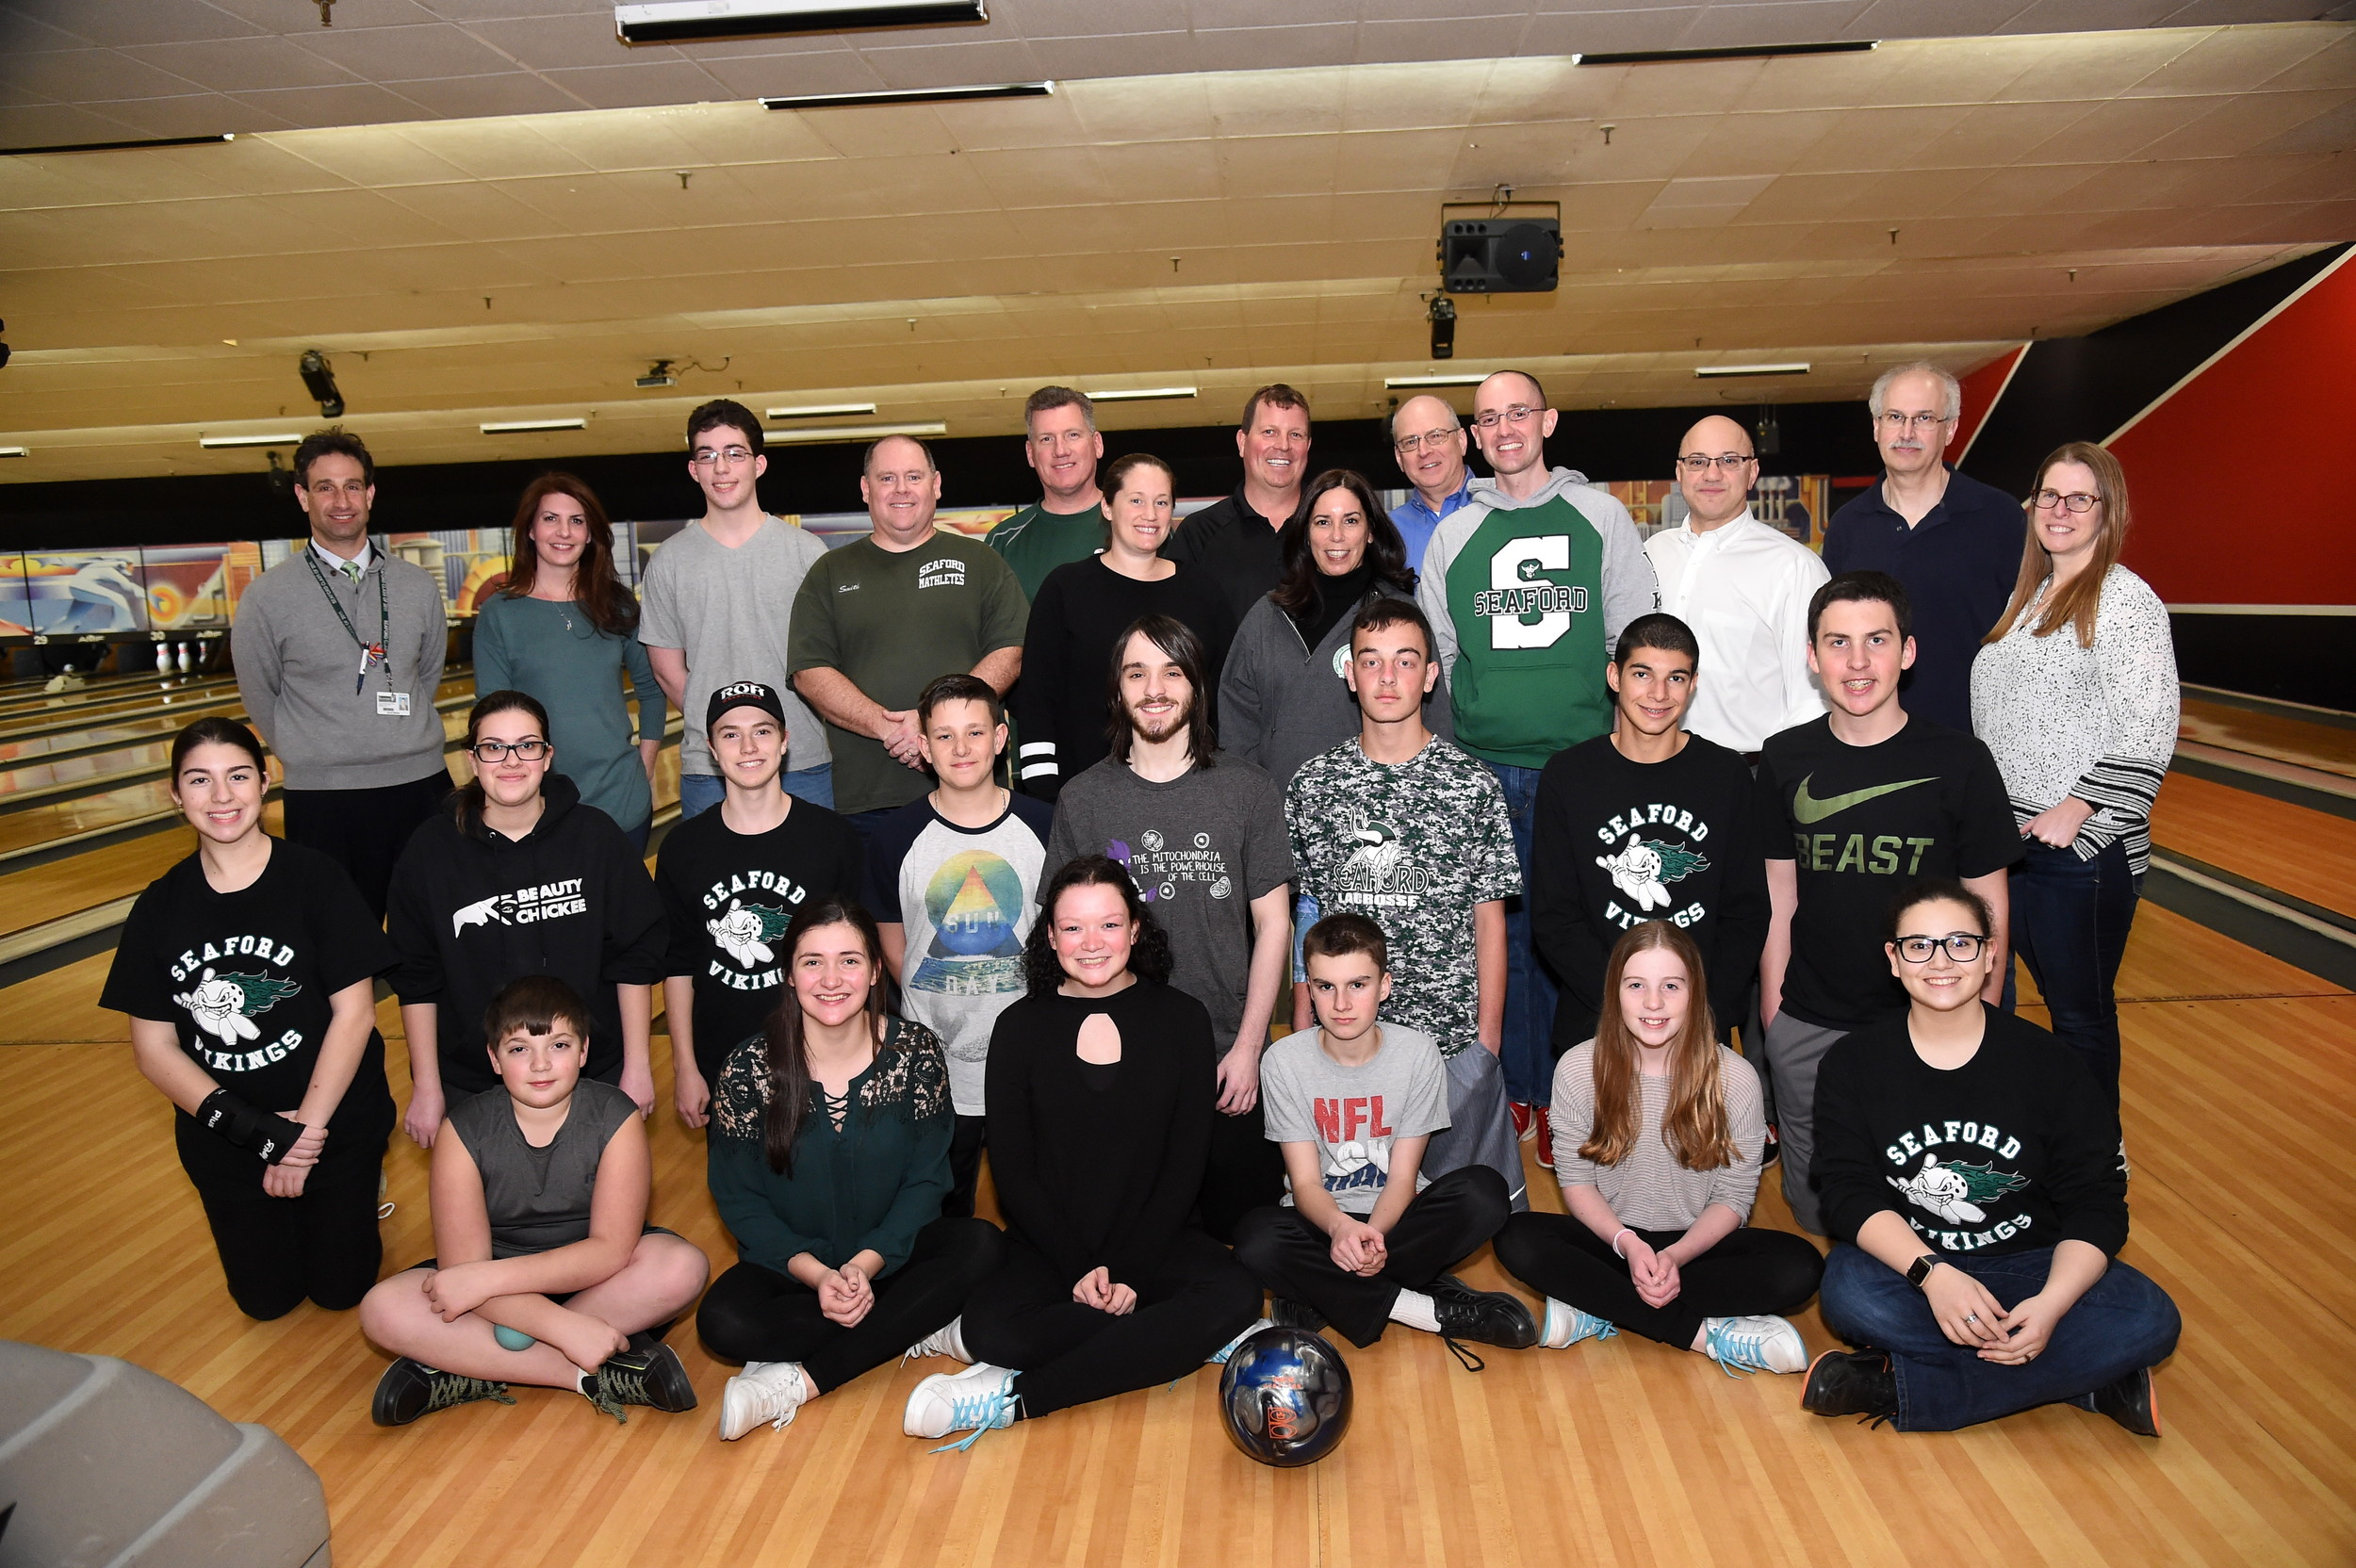 Members of the Seaford boys' and girls' varsity and junior-varsity bowling teams took on Board of Education trustees and administrators from their schools in a friendly competition on Feb. 27.